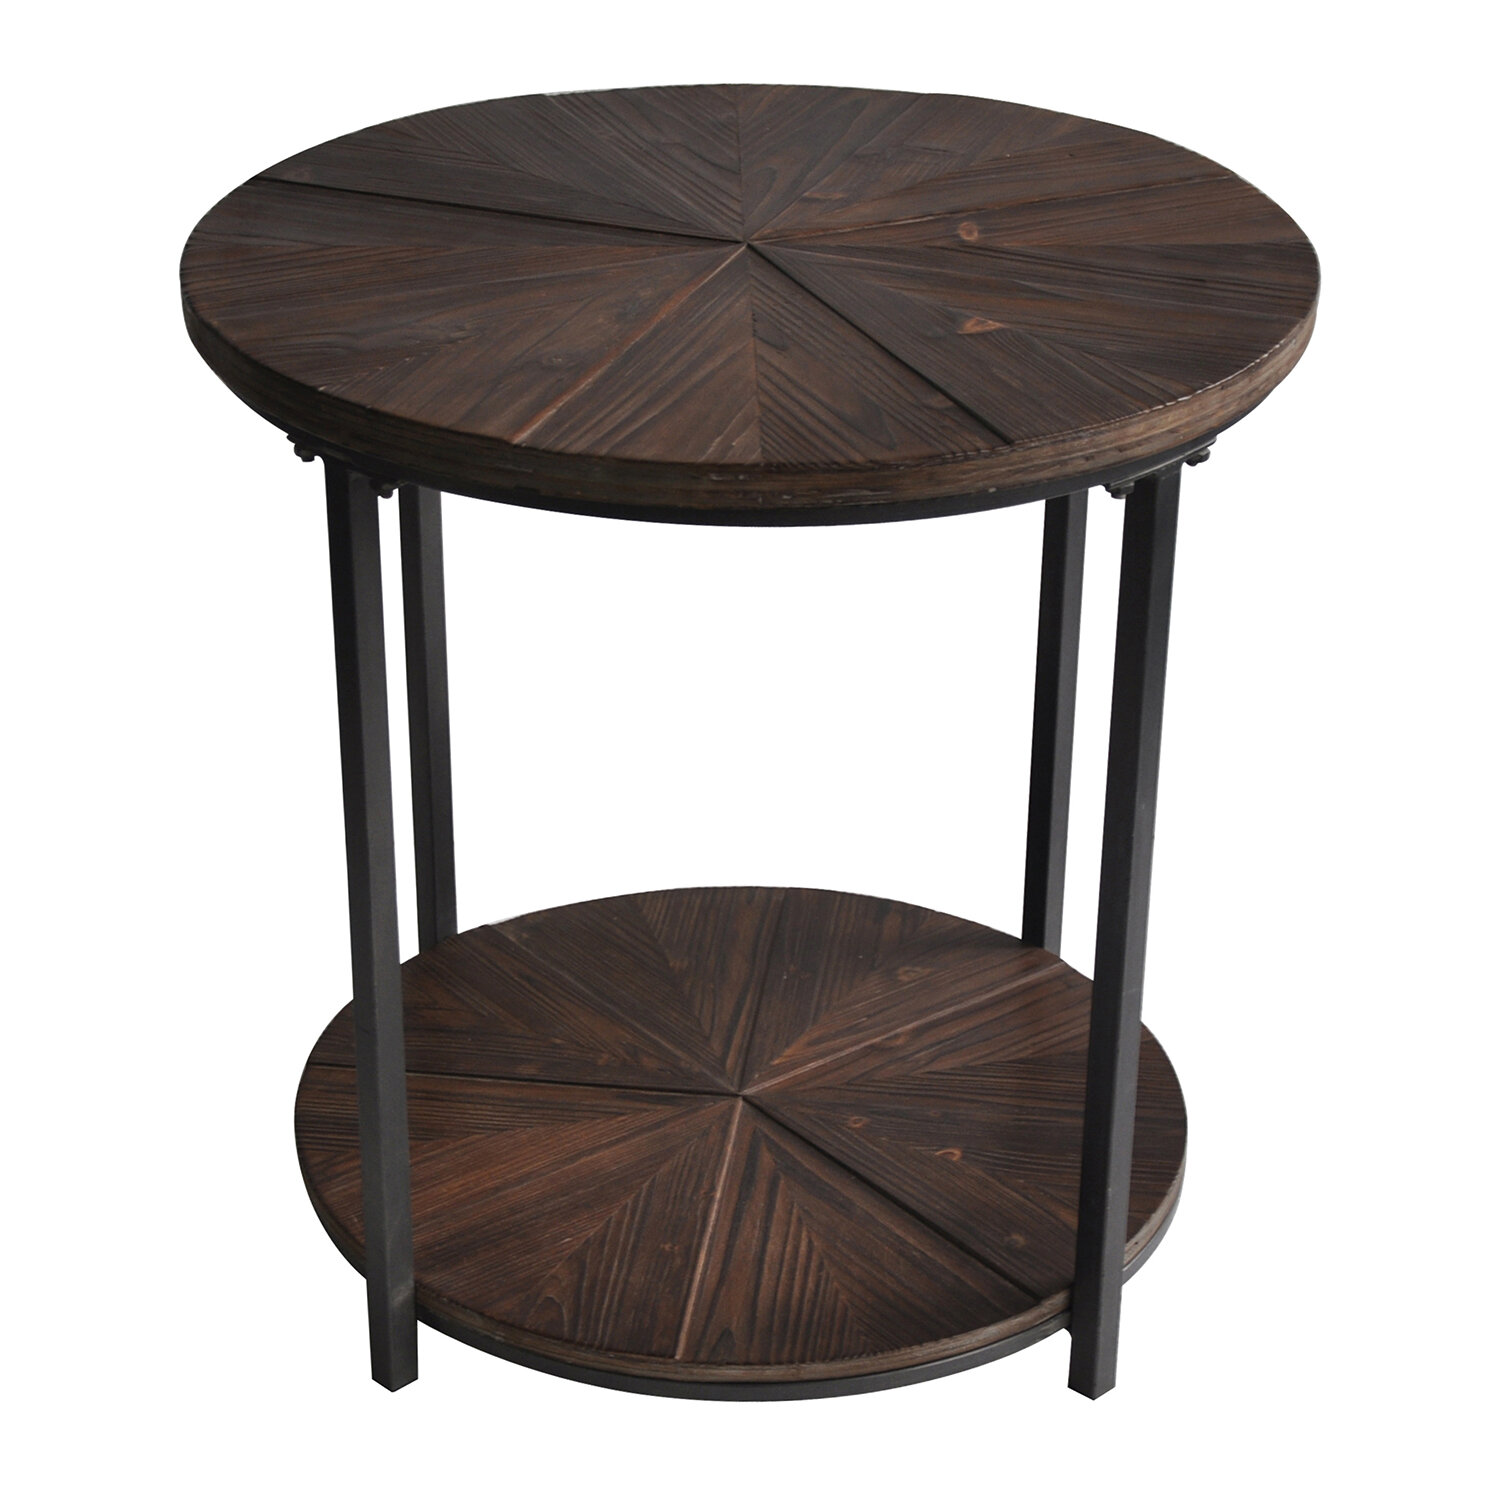 Awesome Gallien Round Metal And Rustic Wood End Table Machost Co Dining Chair Design Ideas Machostcouk